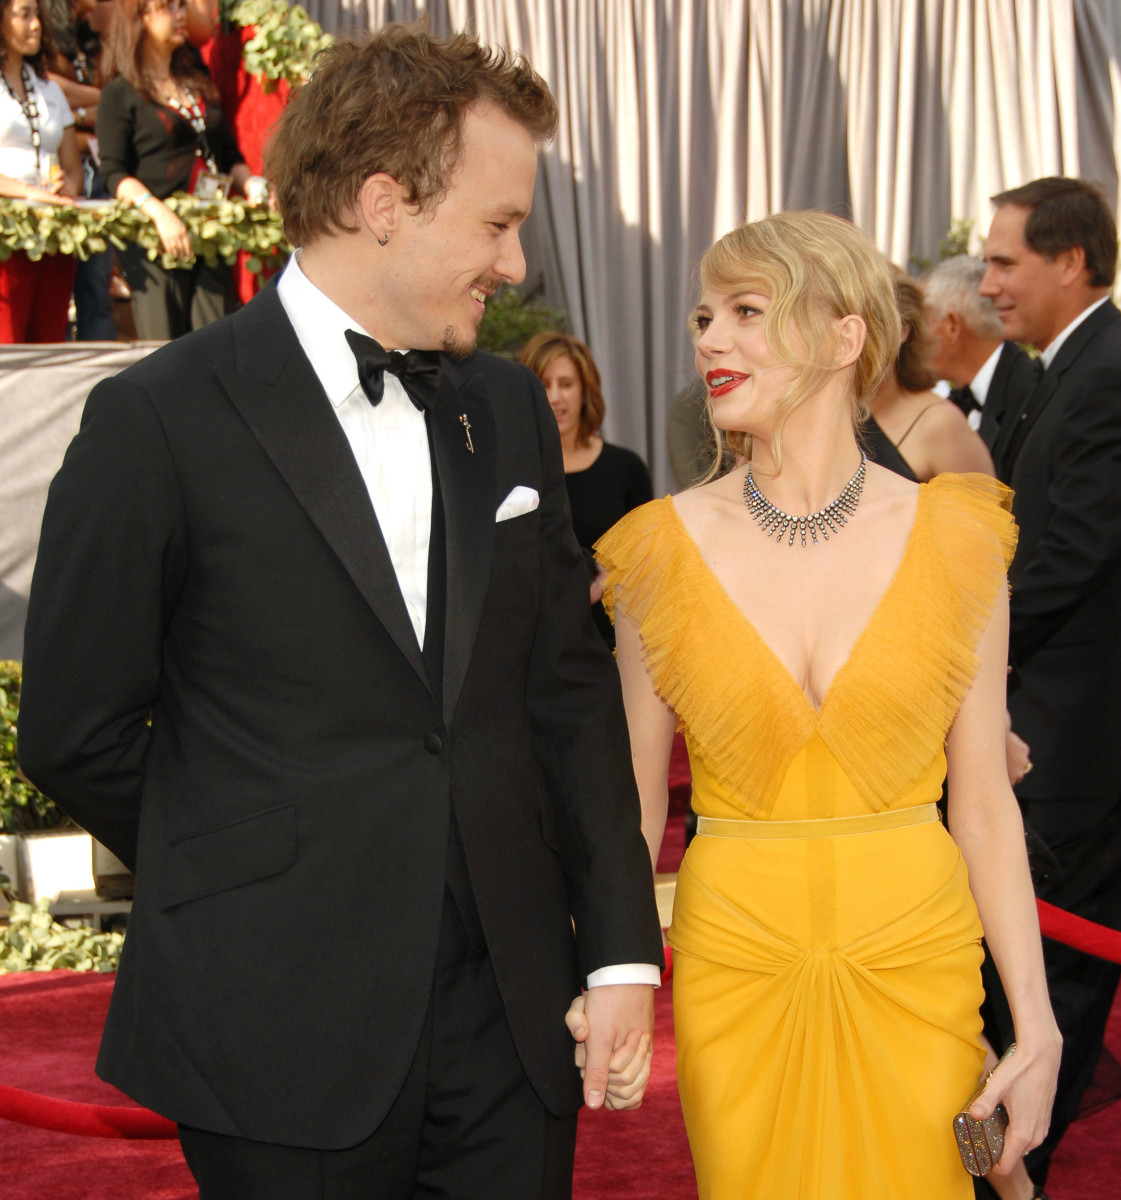 Heath Ledger with Michelle Williams in Vera Wang at the 78th Annual Academy Awards in 2006. Photo: Kevin Mazur/WireImage